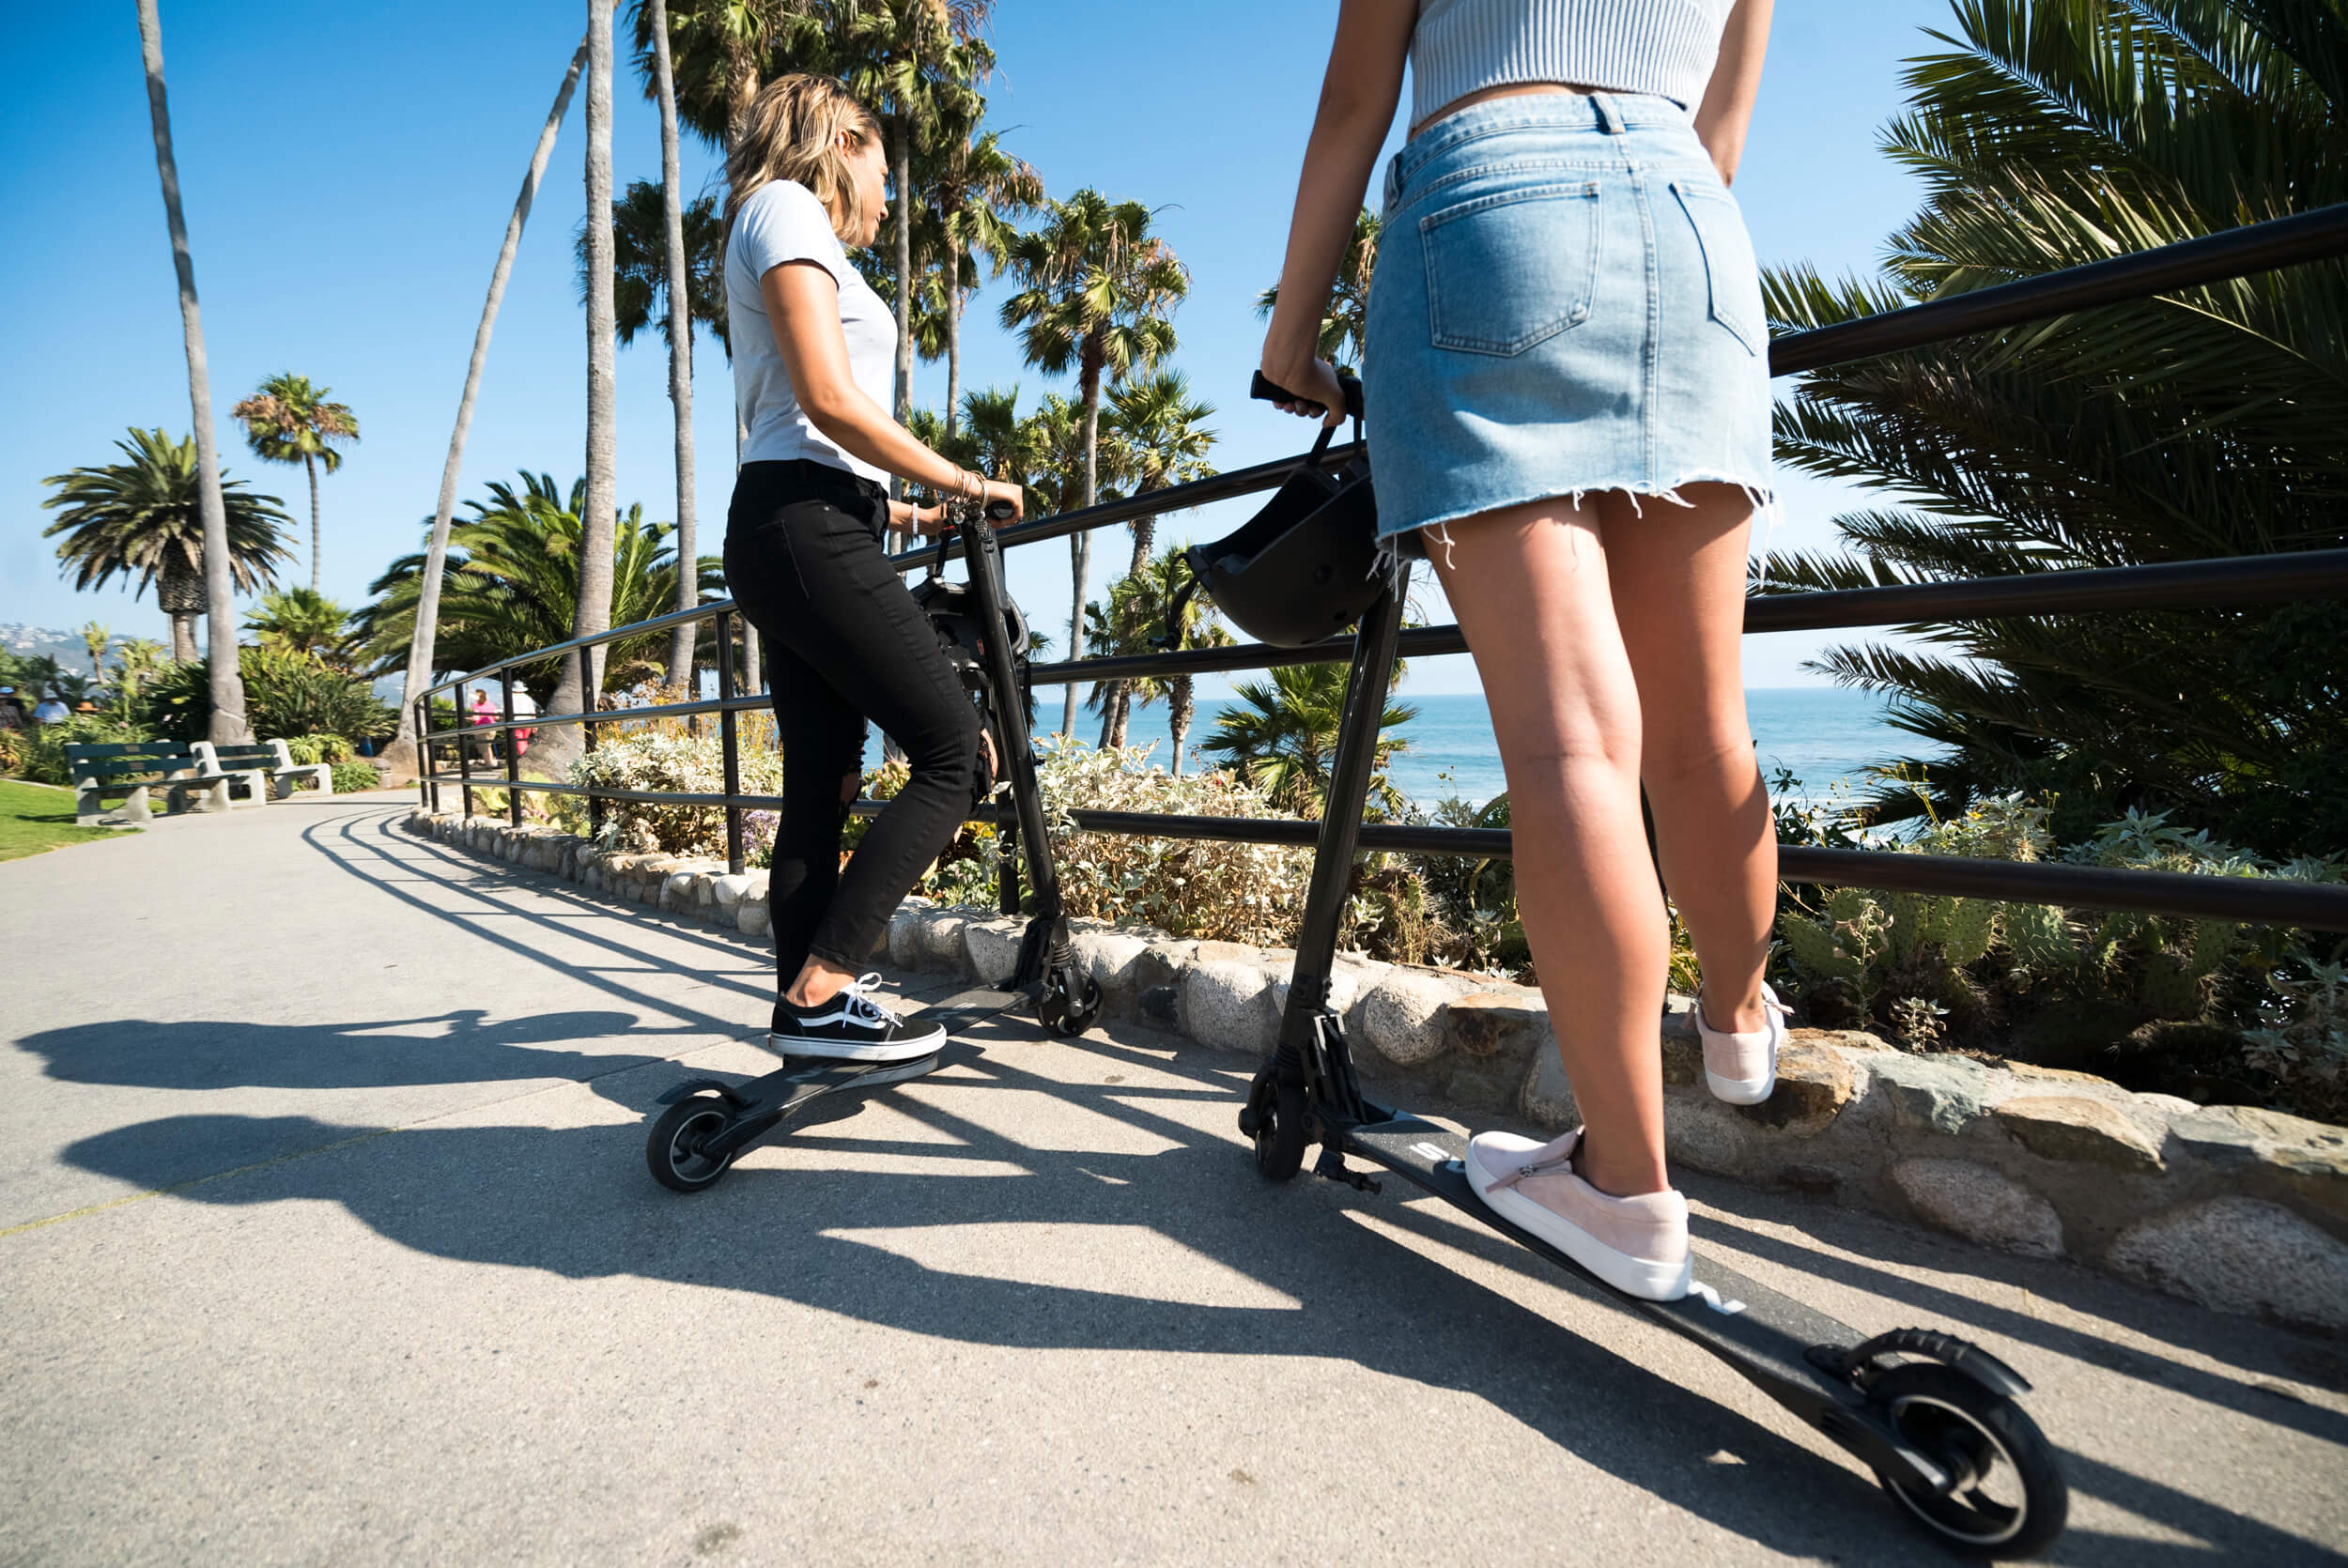 Swagtron Swagger Electric Scooters - fun but definitely not a toy!